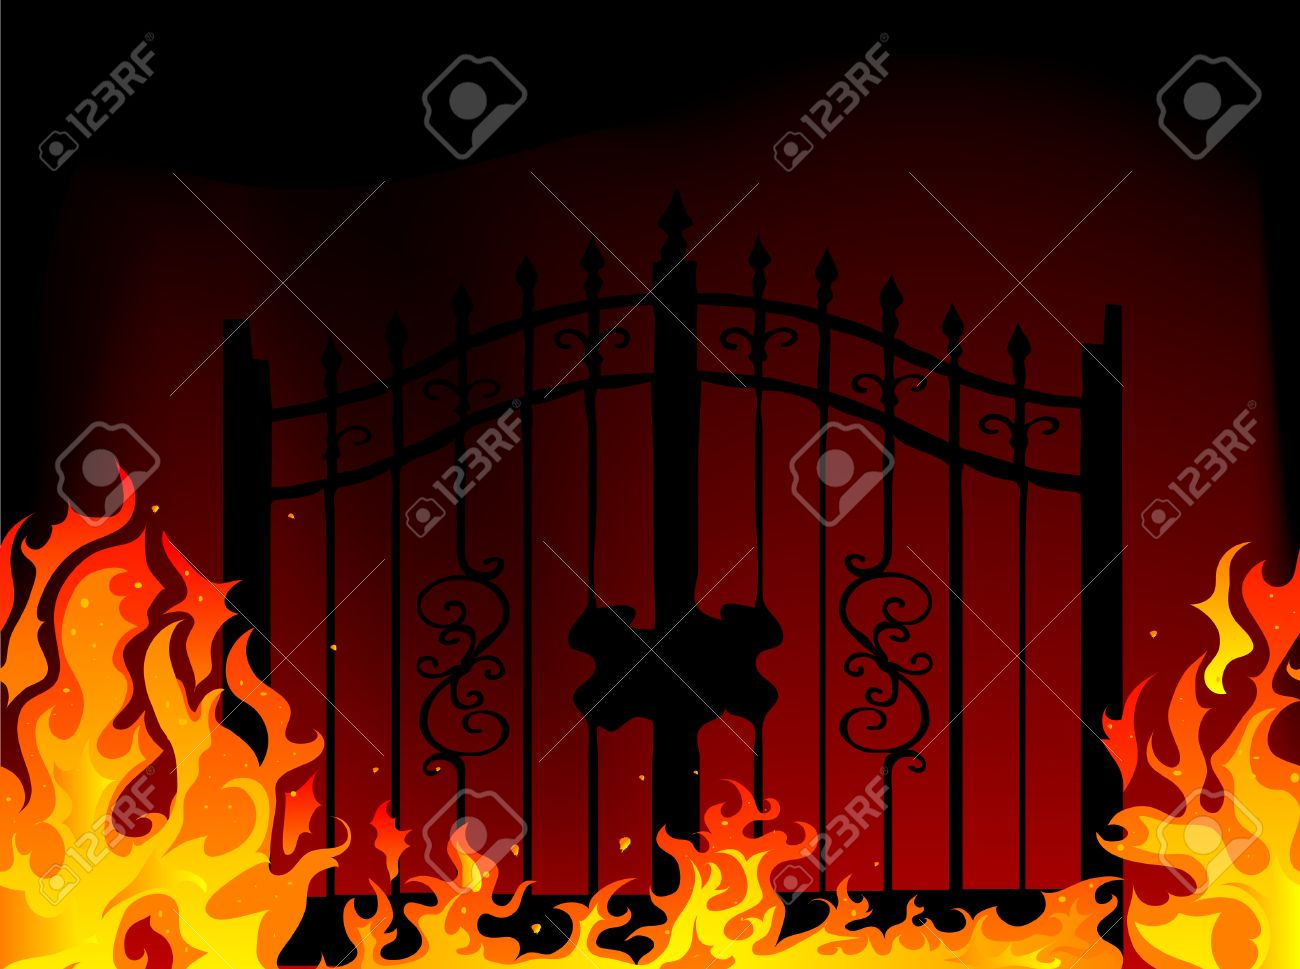 Gate to hell - abstract illustration Stock Vector - 8014033